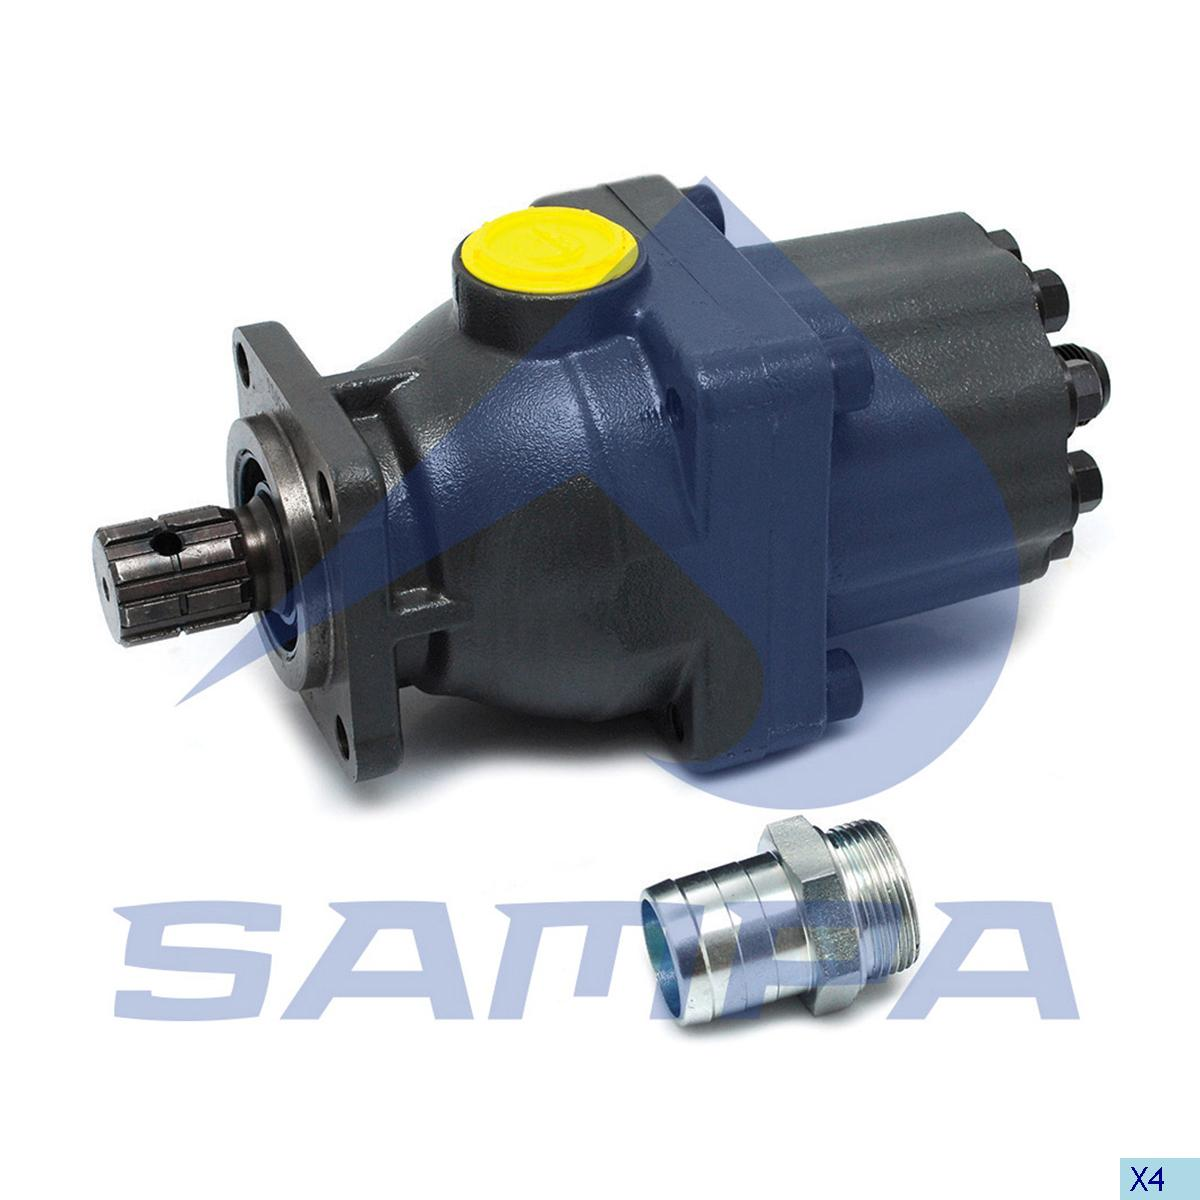 Valve, Power Take Off, Mercedes, Gear Box